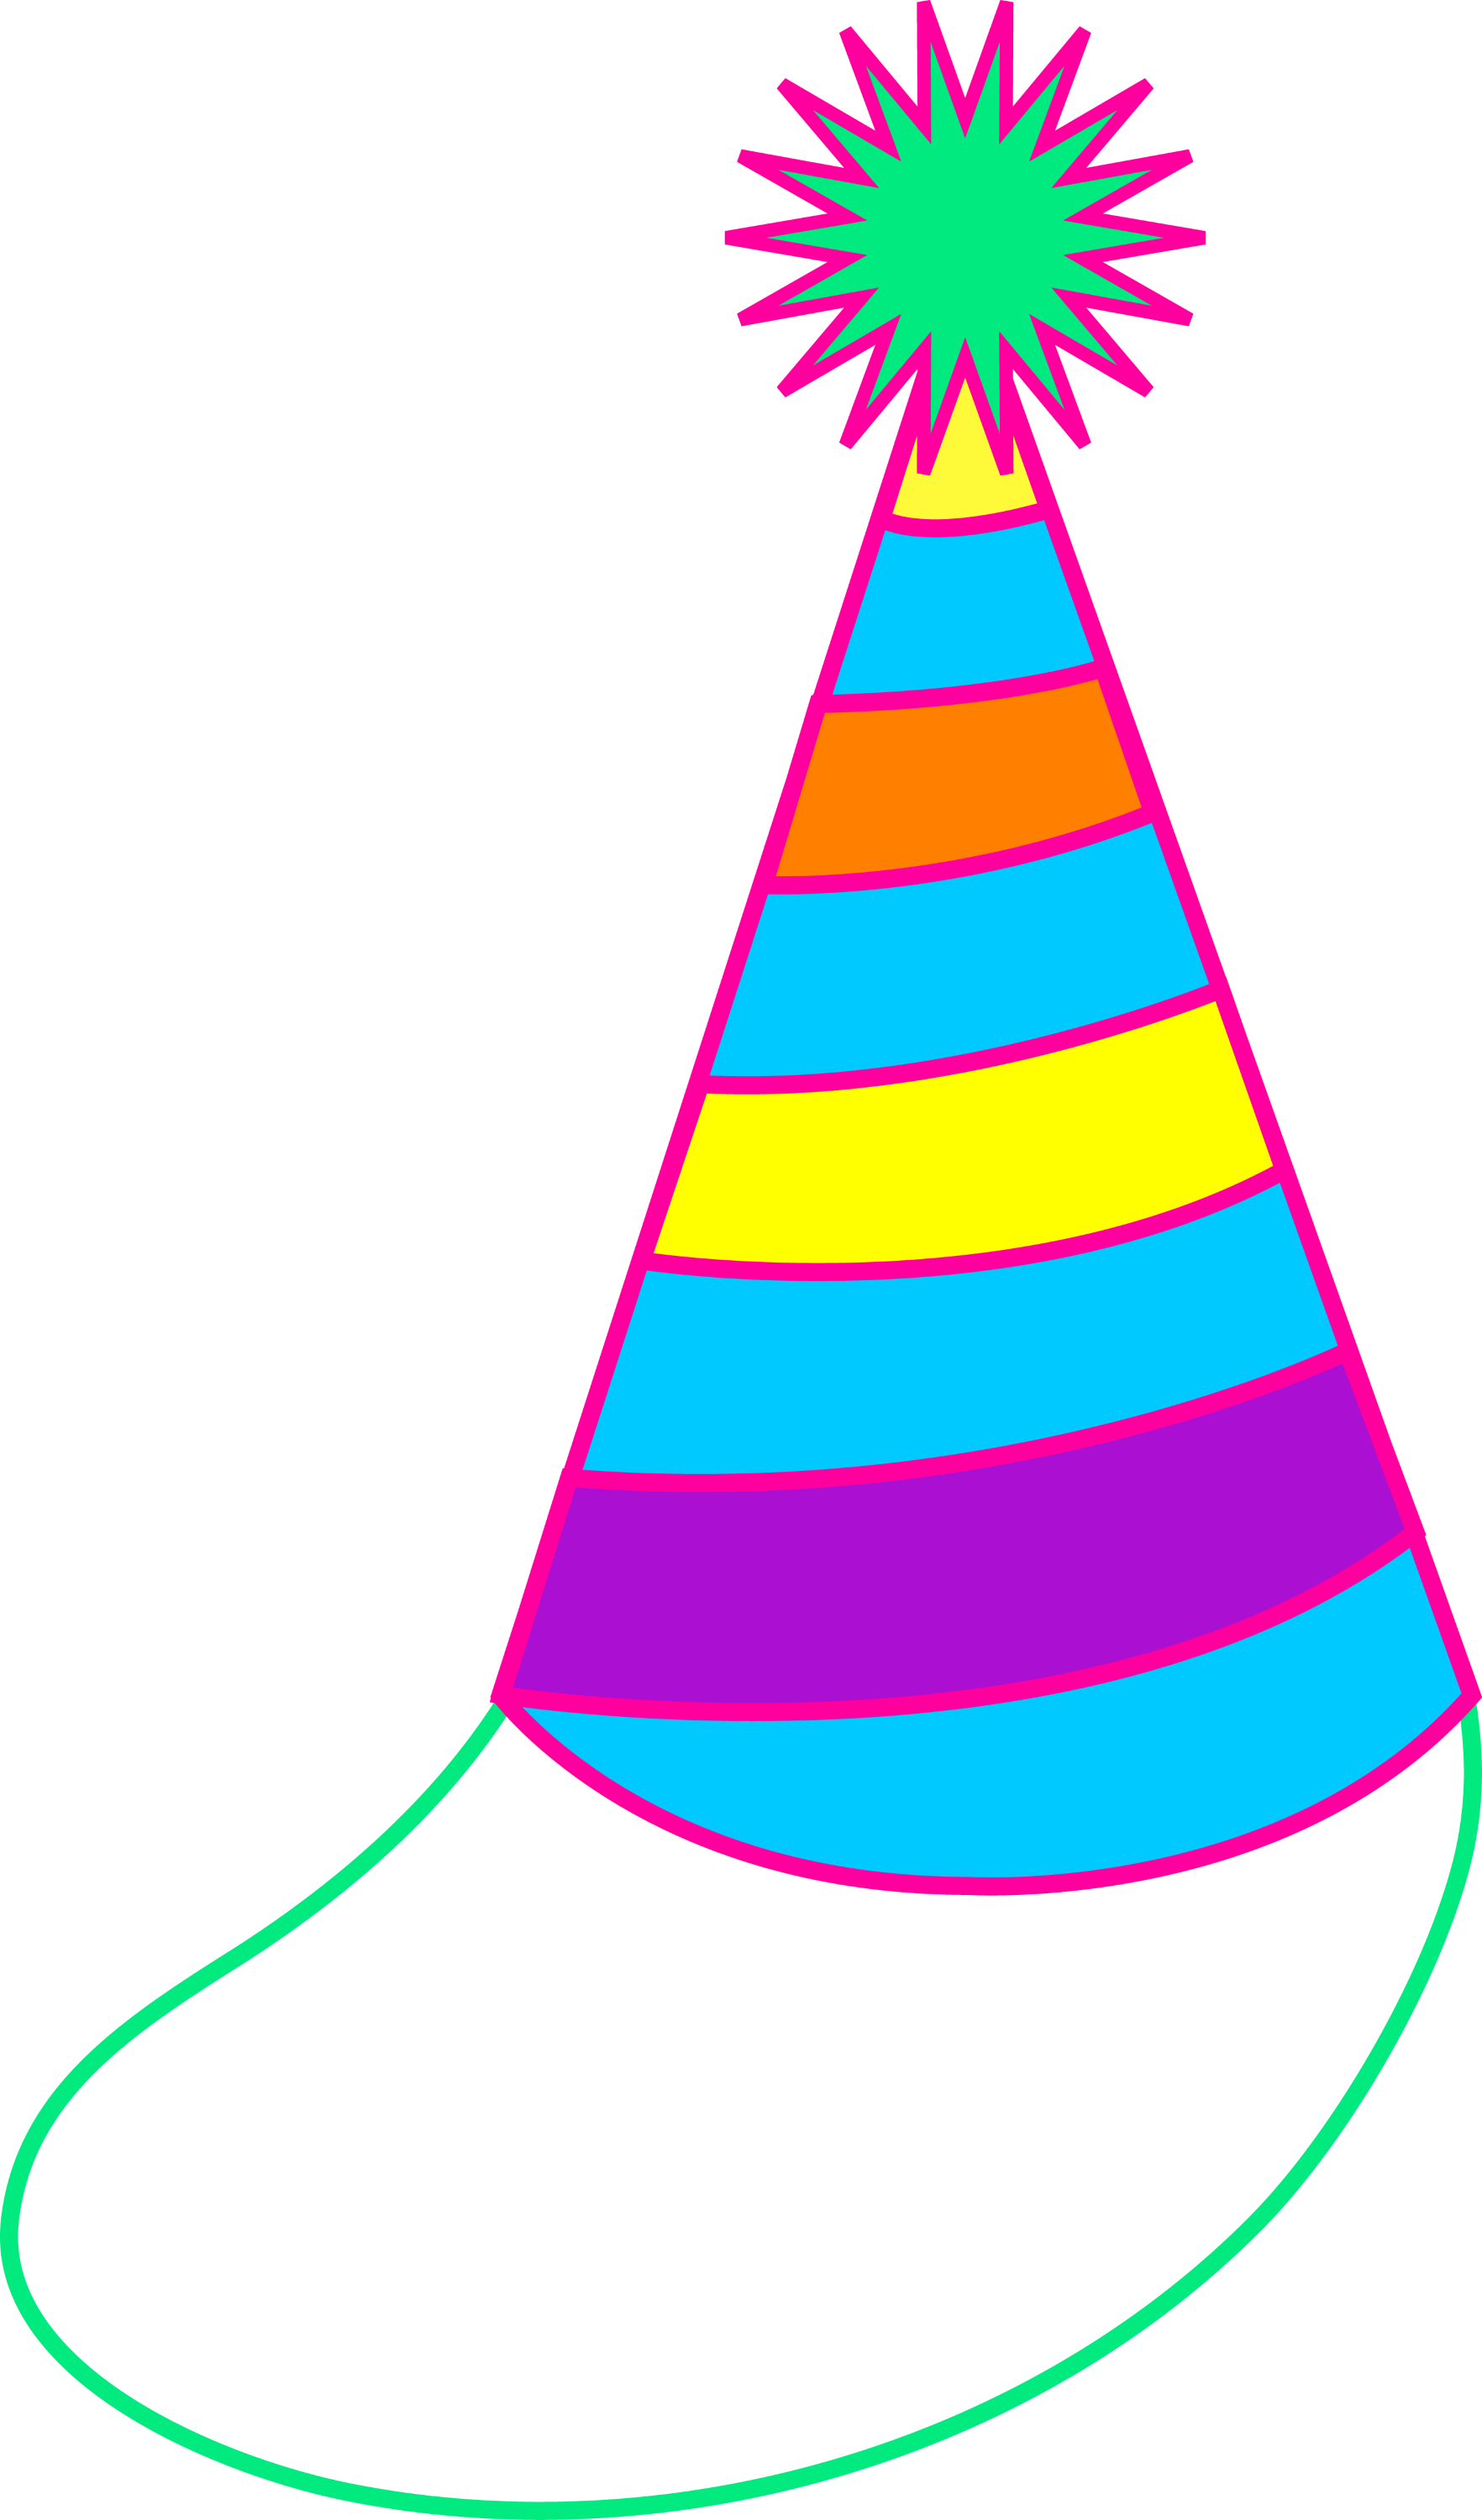 colorful party hat free clip art rh sweetclipart com birthday hat clipart black and white birthday party hat clipart free